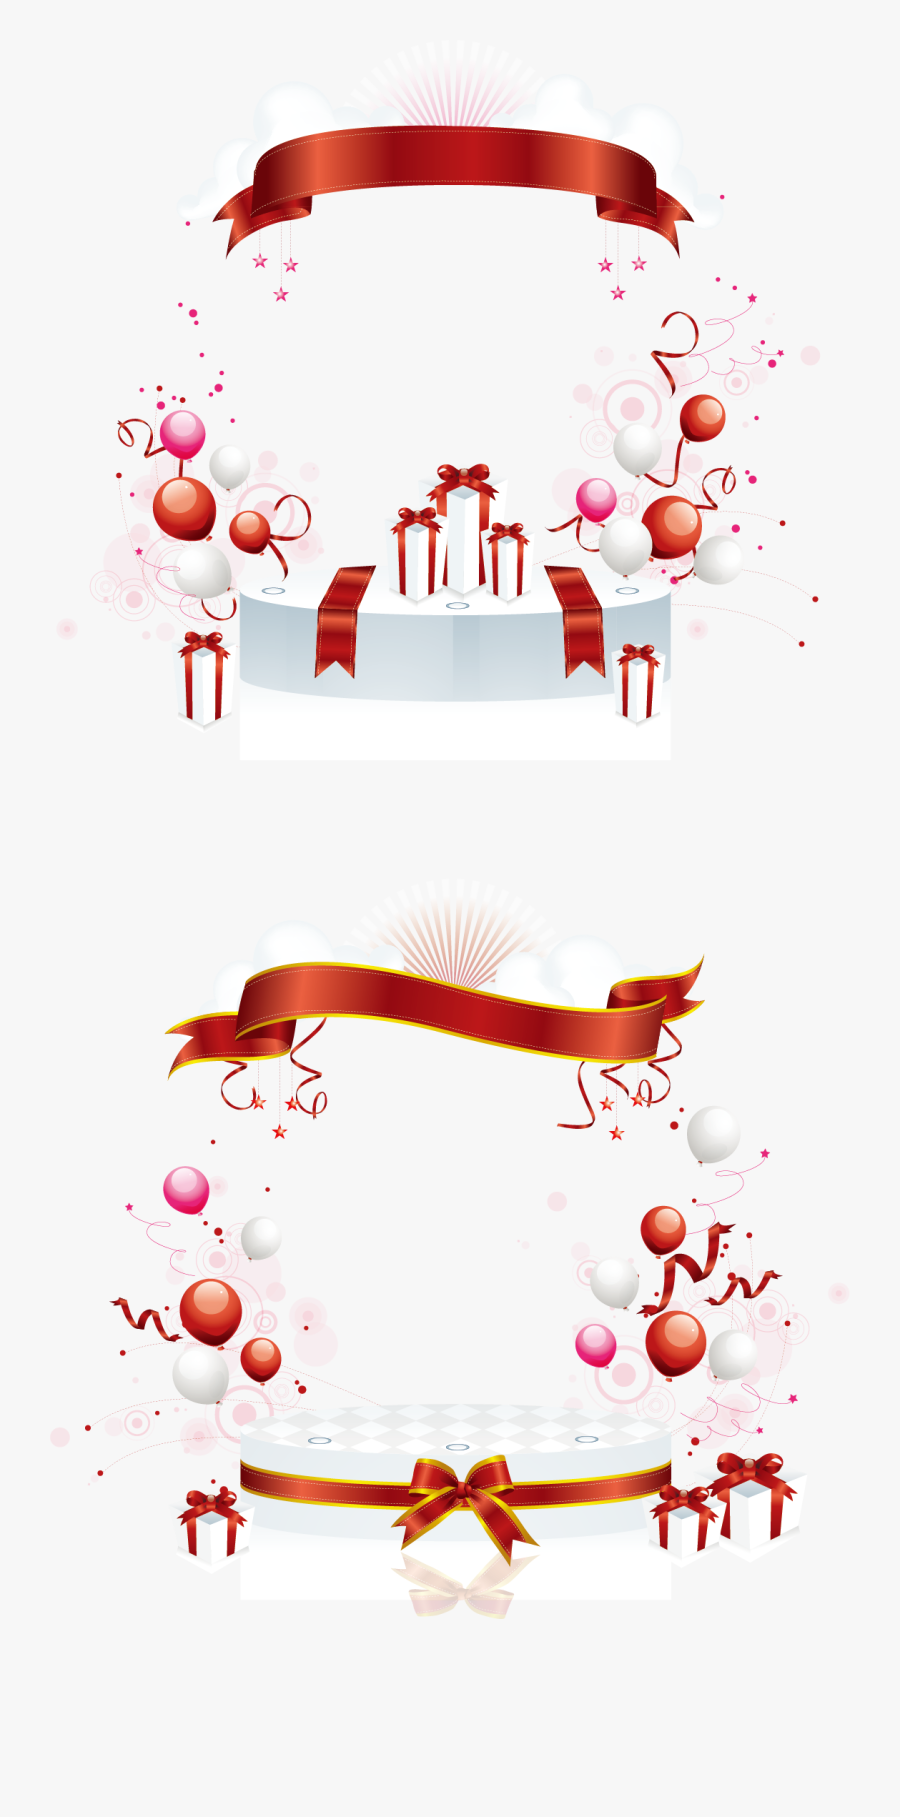 Gallery Of Free Wedding Clipart Unique Birthday Card - Wedding Invitation Design Png, Transparent Clipart